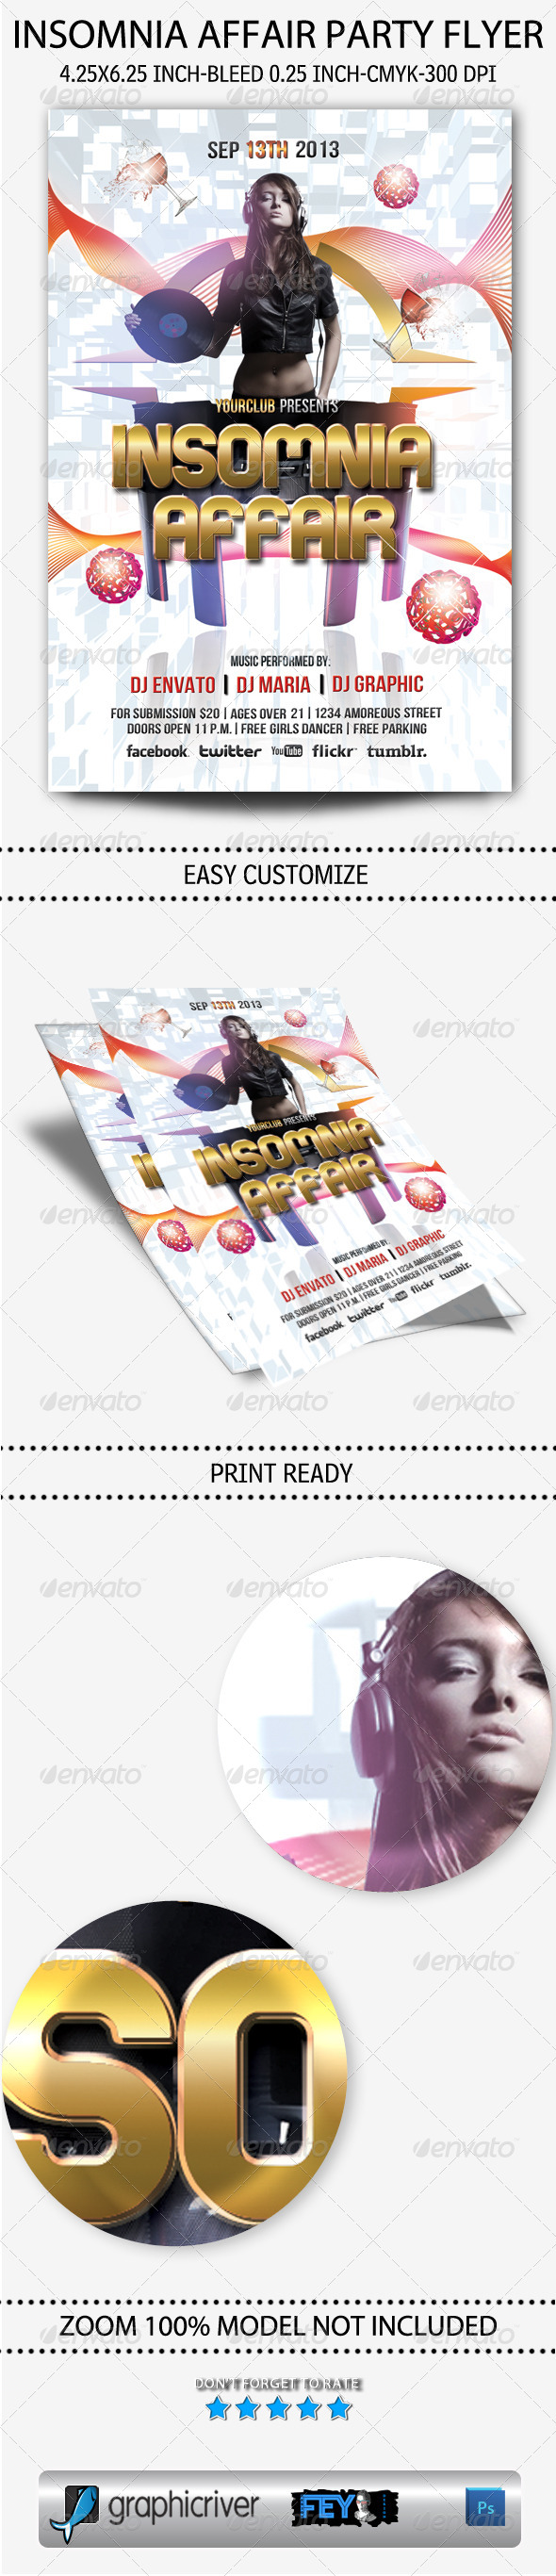 GraphicRiver Insomnia Affair Party Flyer 5605363